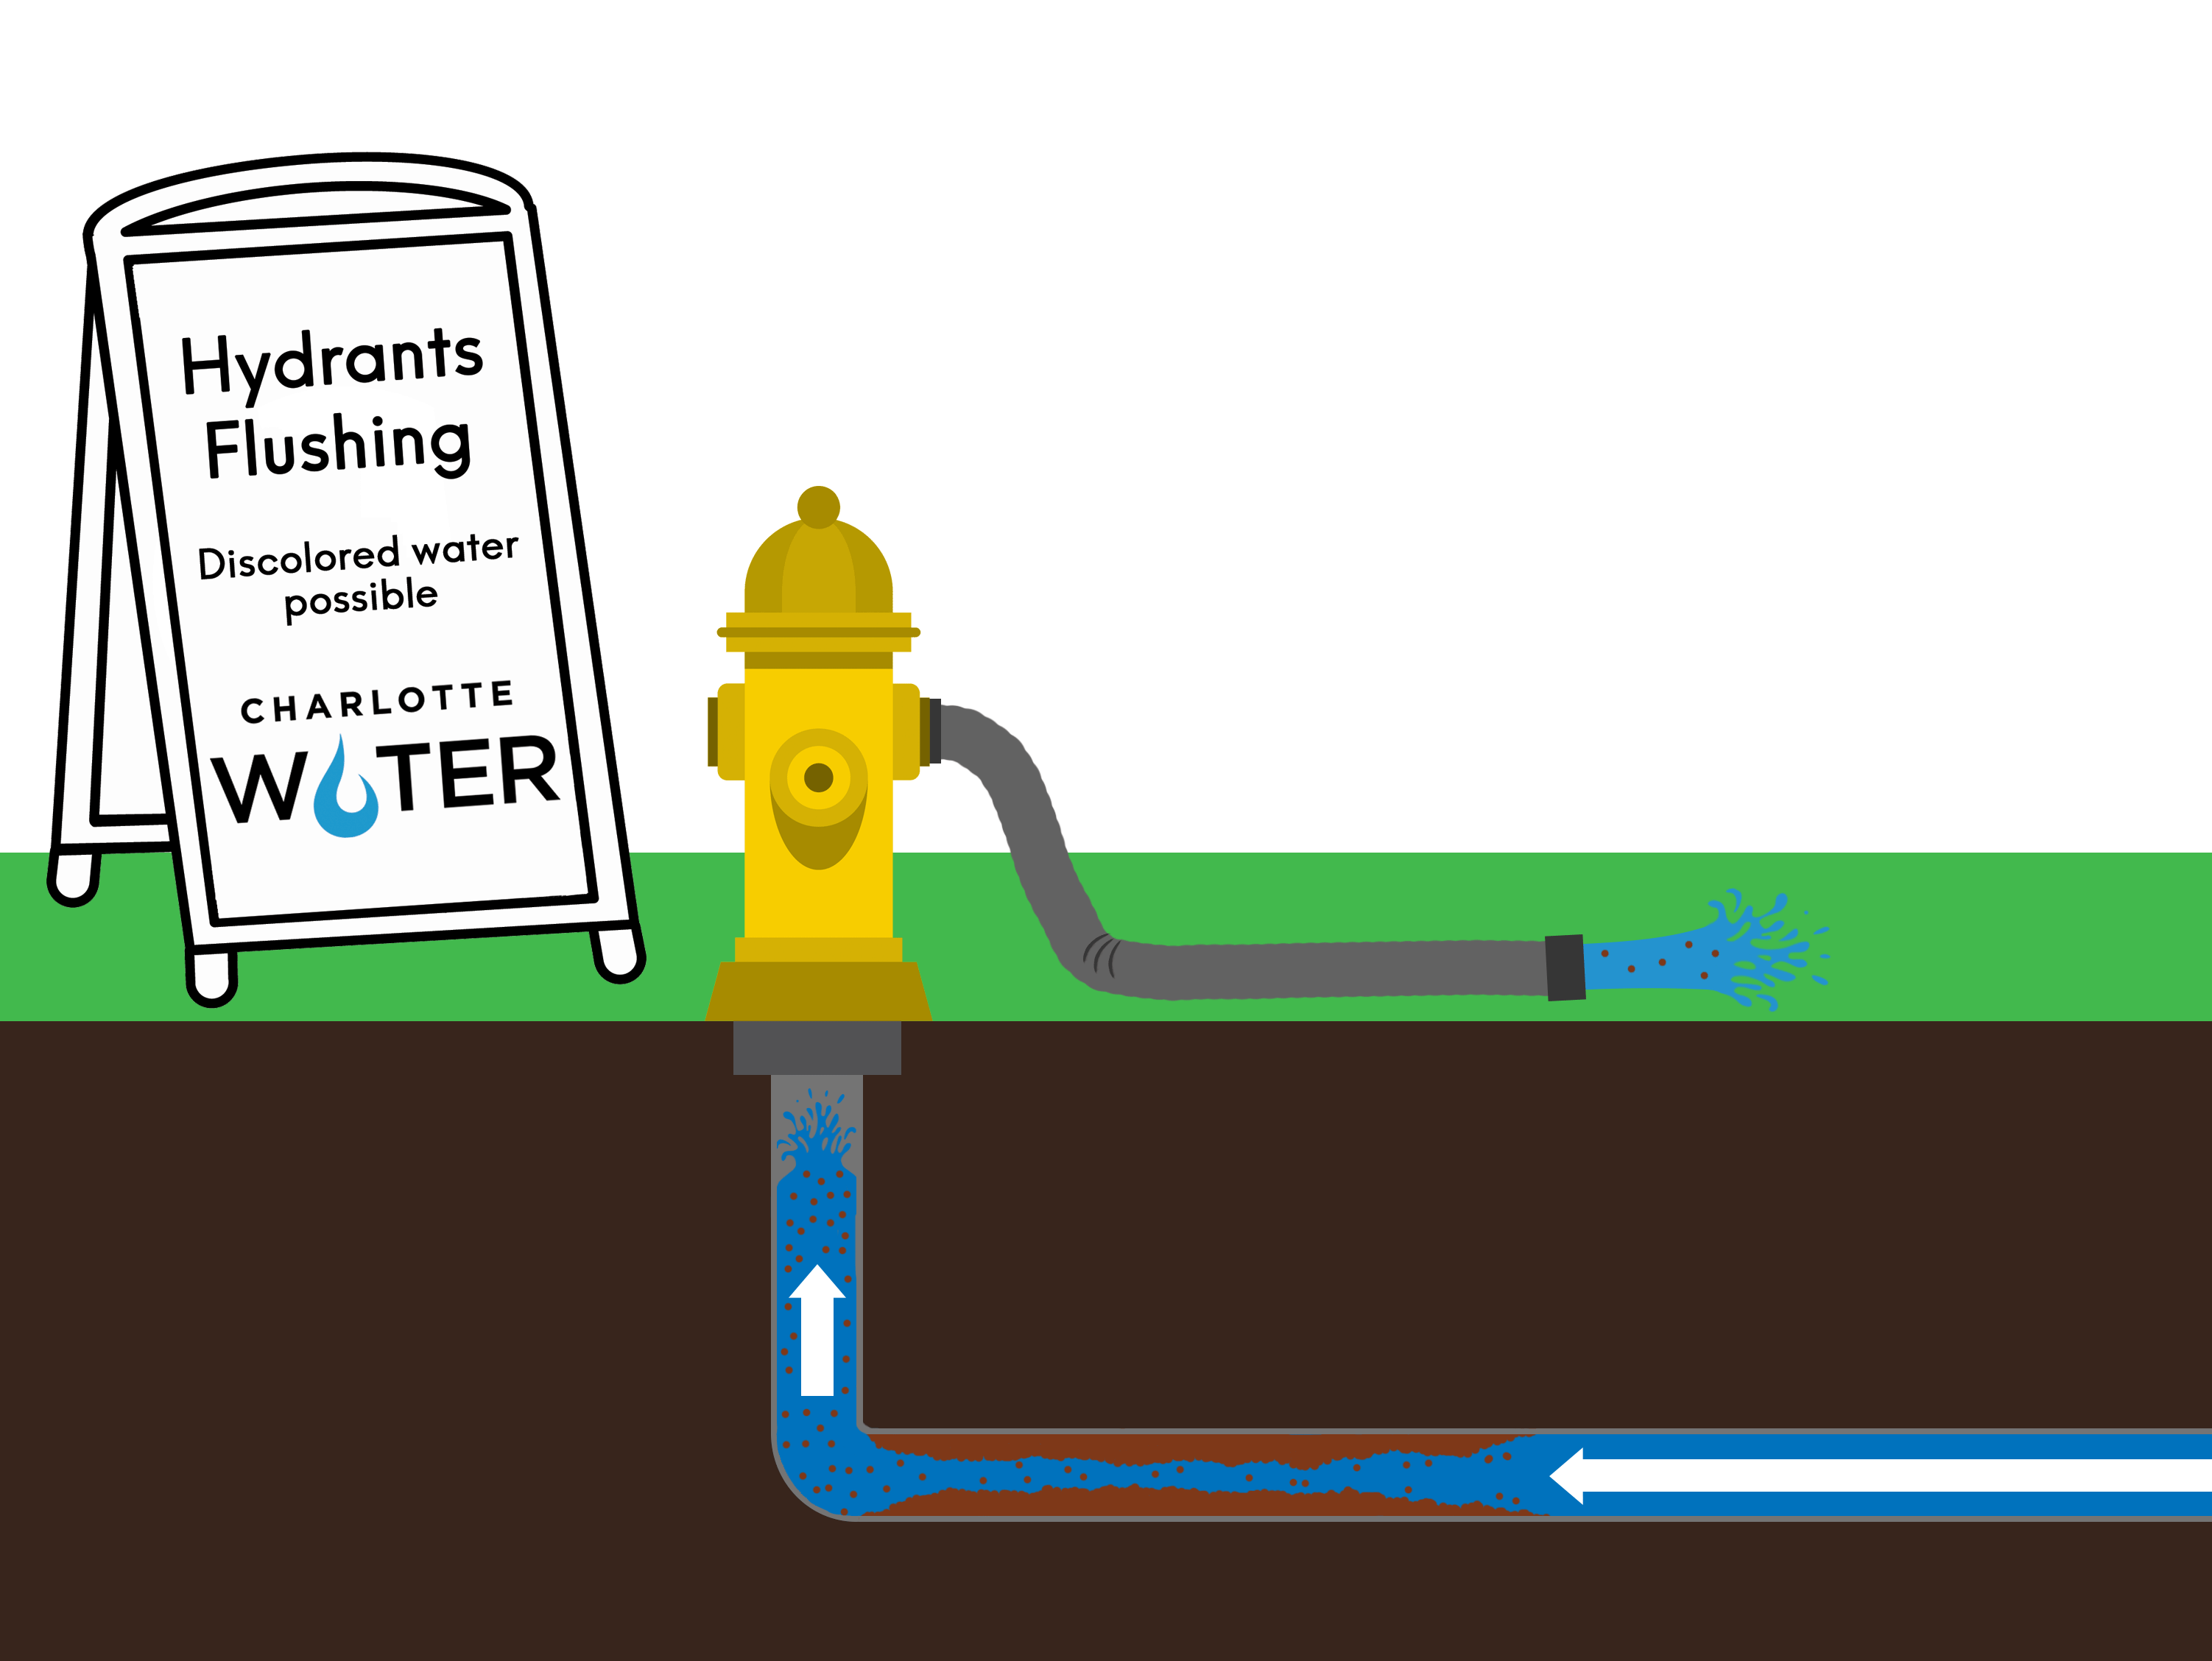 Unidirectional Flow Diagram showing water flushing through the hydrant pipes, cleaning out the deposits inside